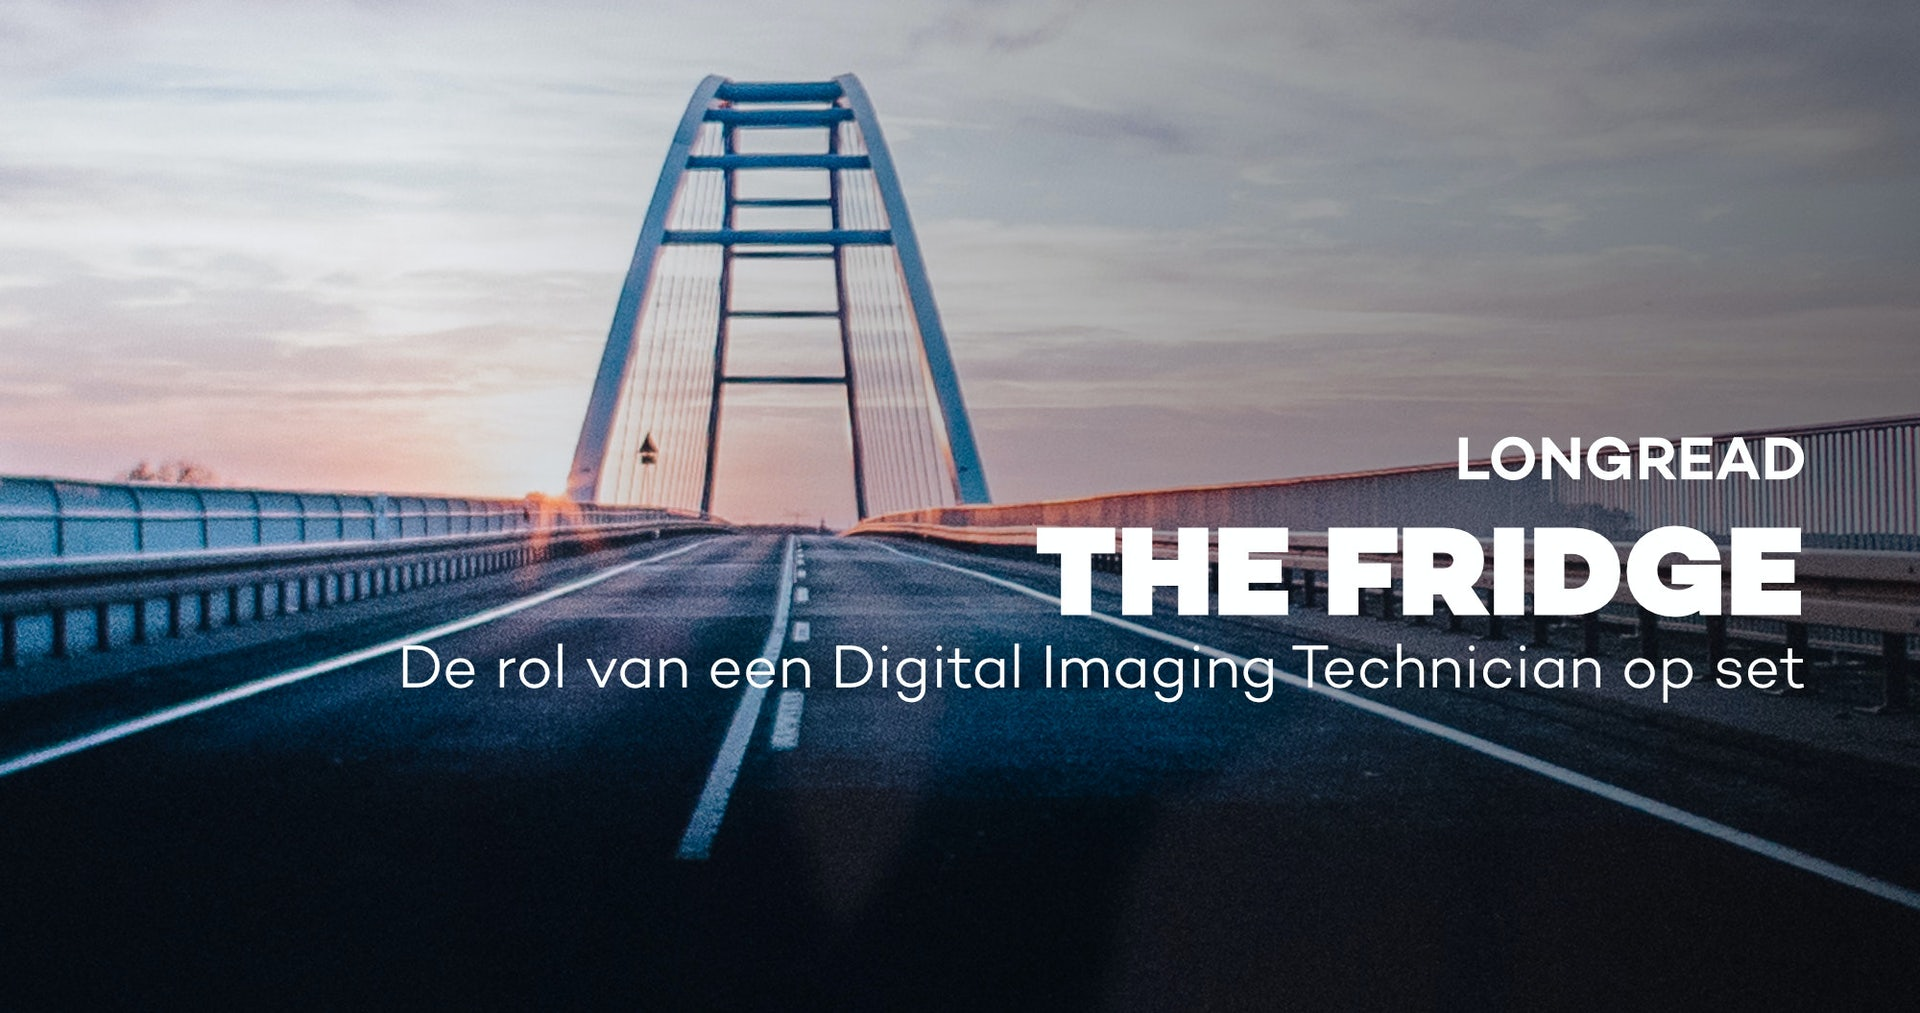 De rol van een Digital Imaging Technician op set